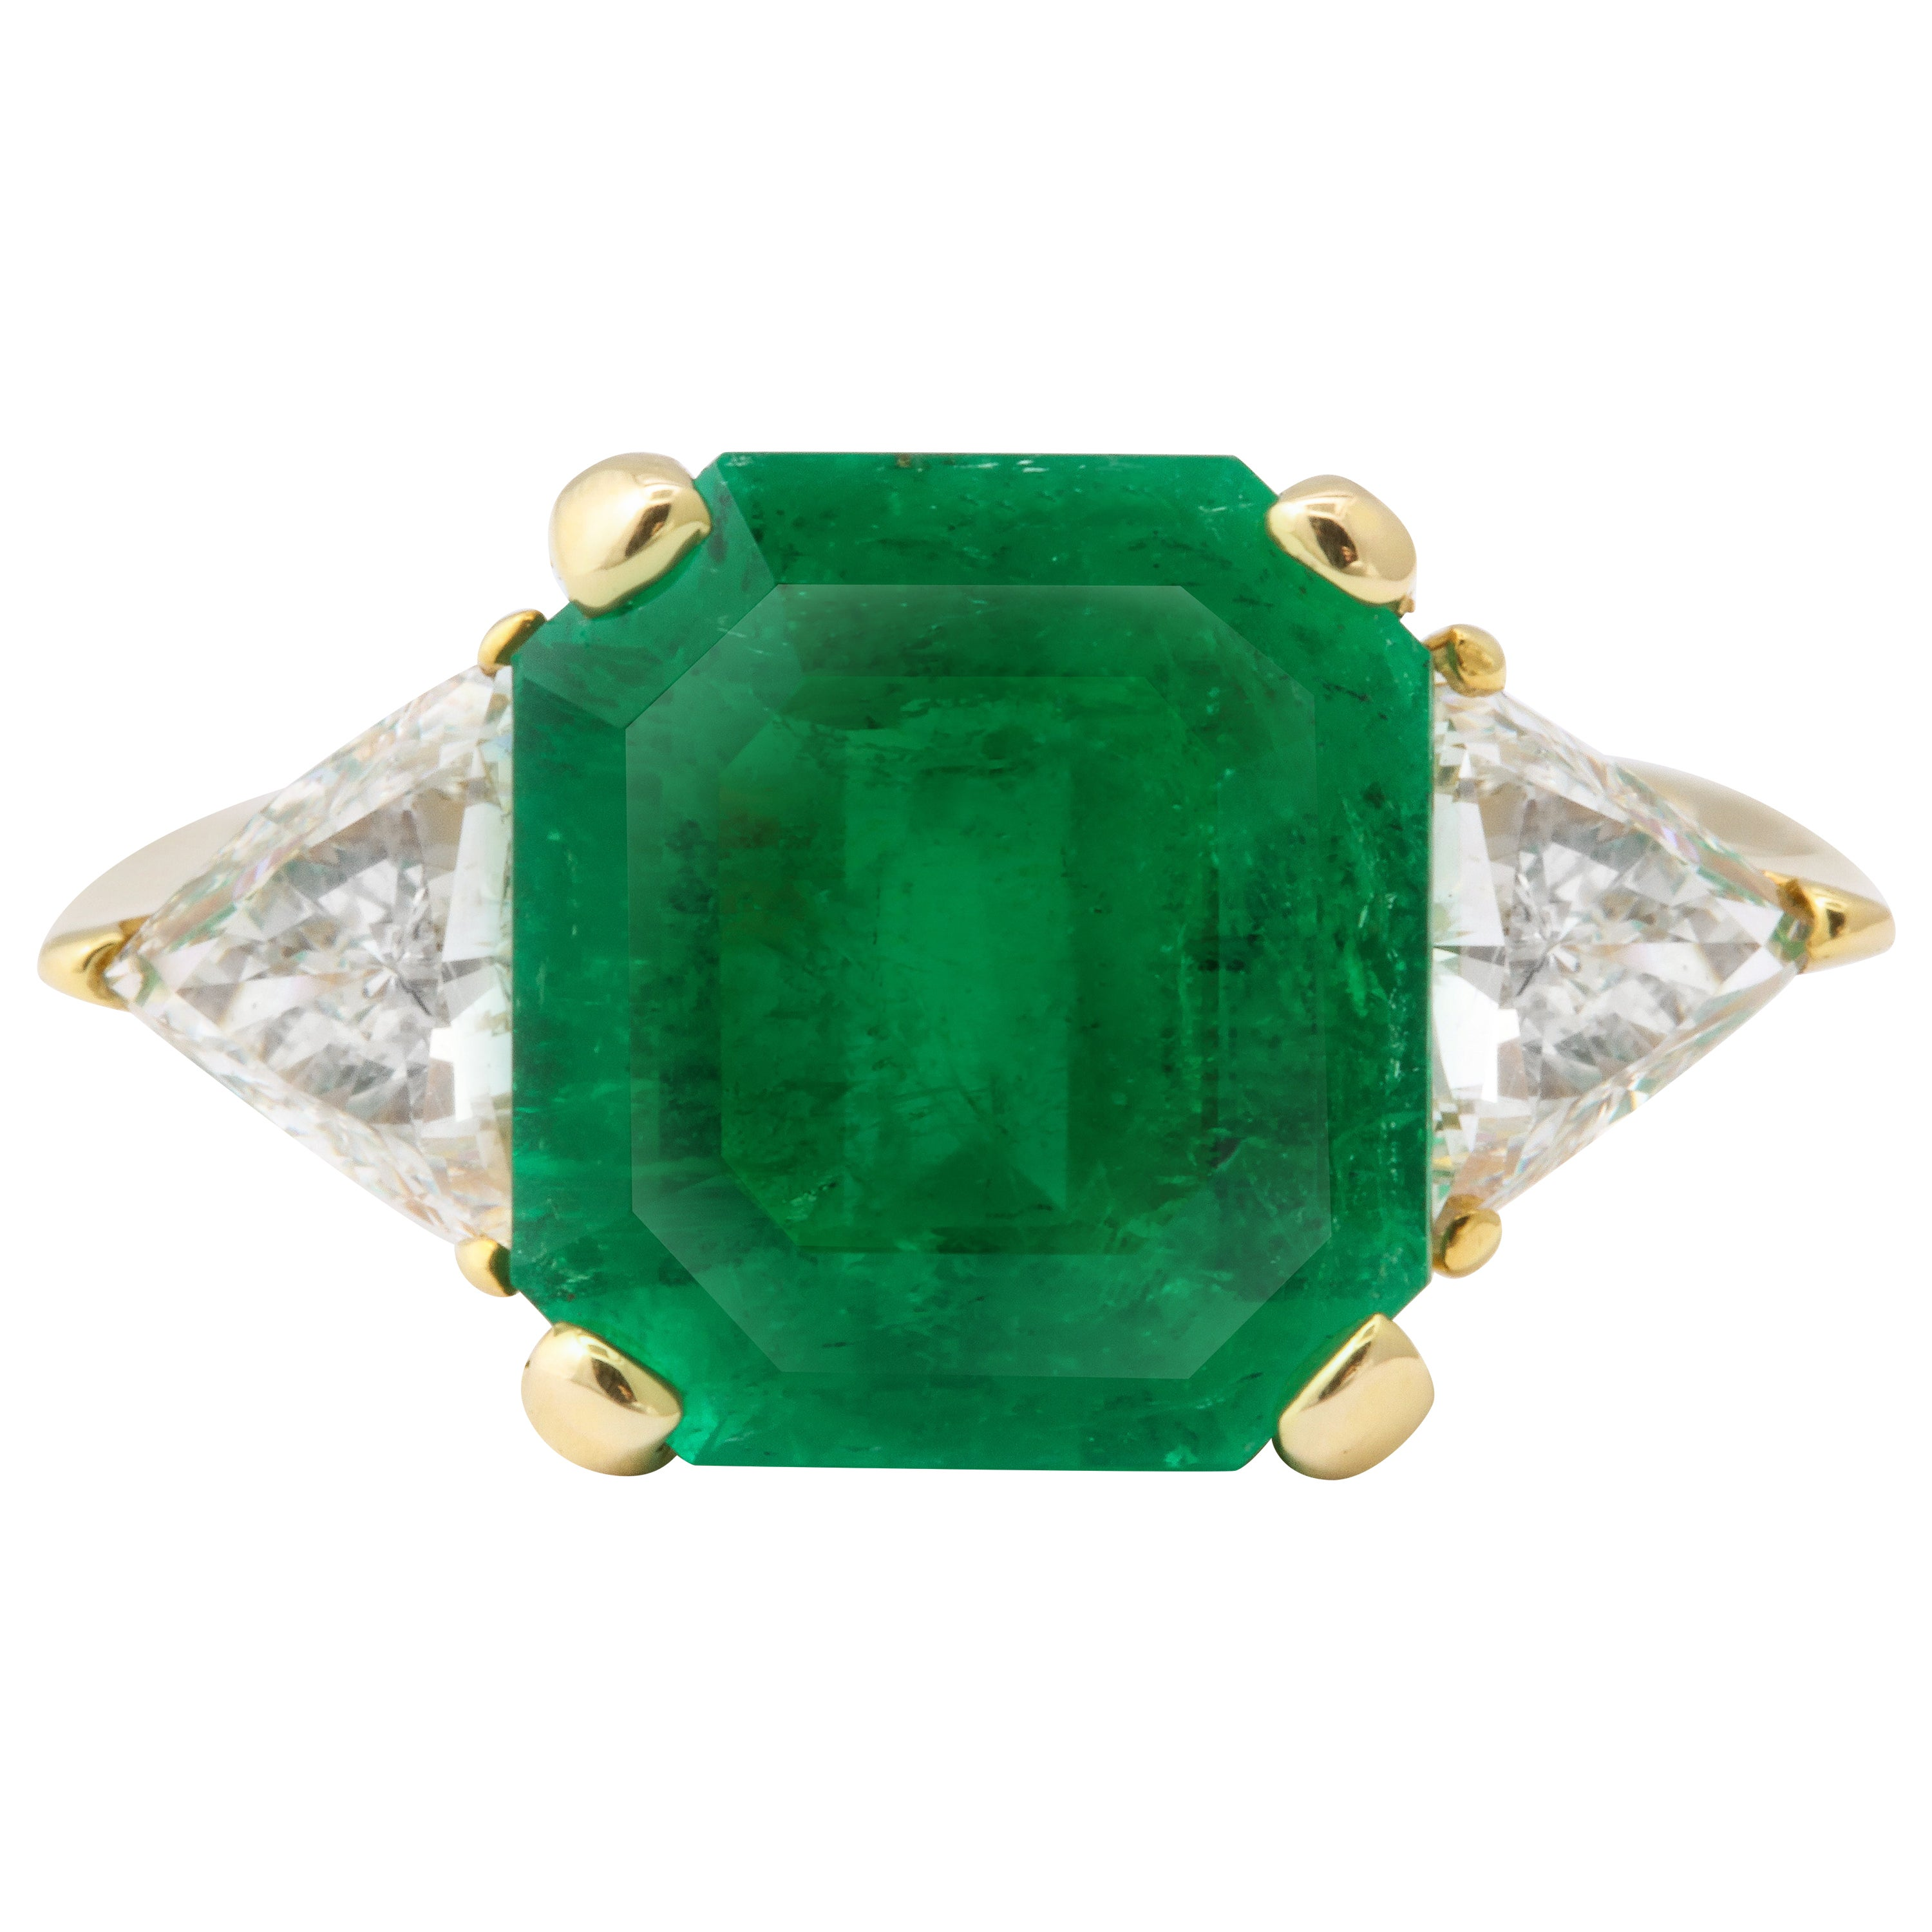 5 Carat Colombian Emerald Ring